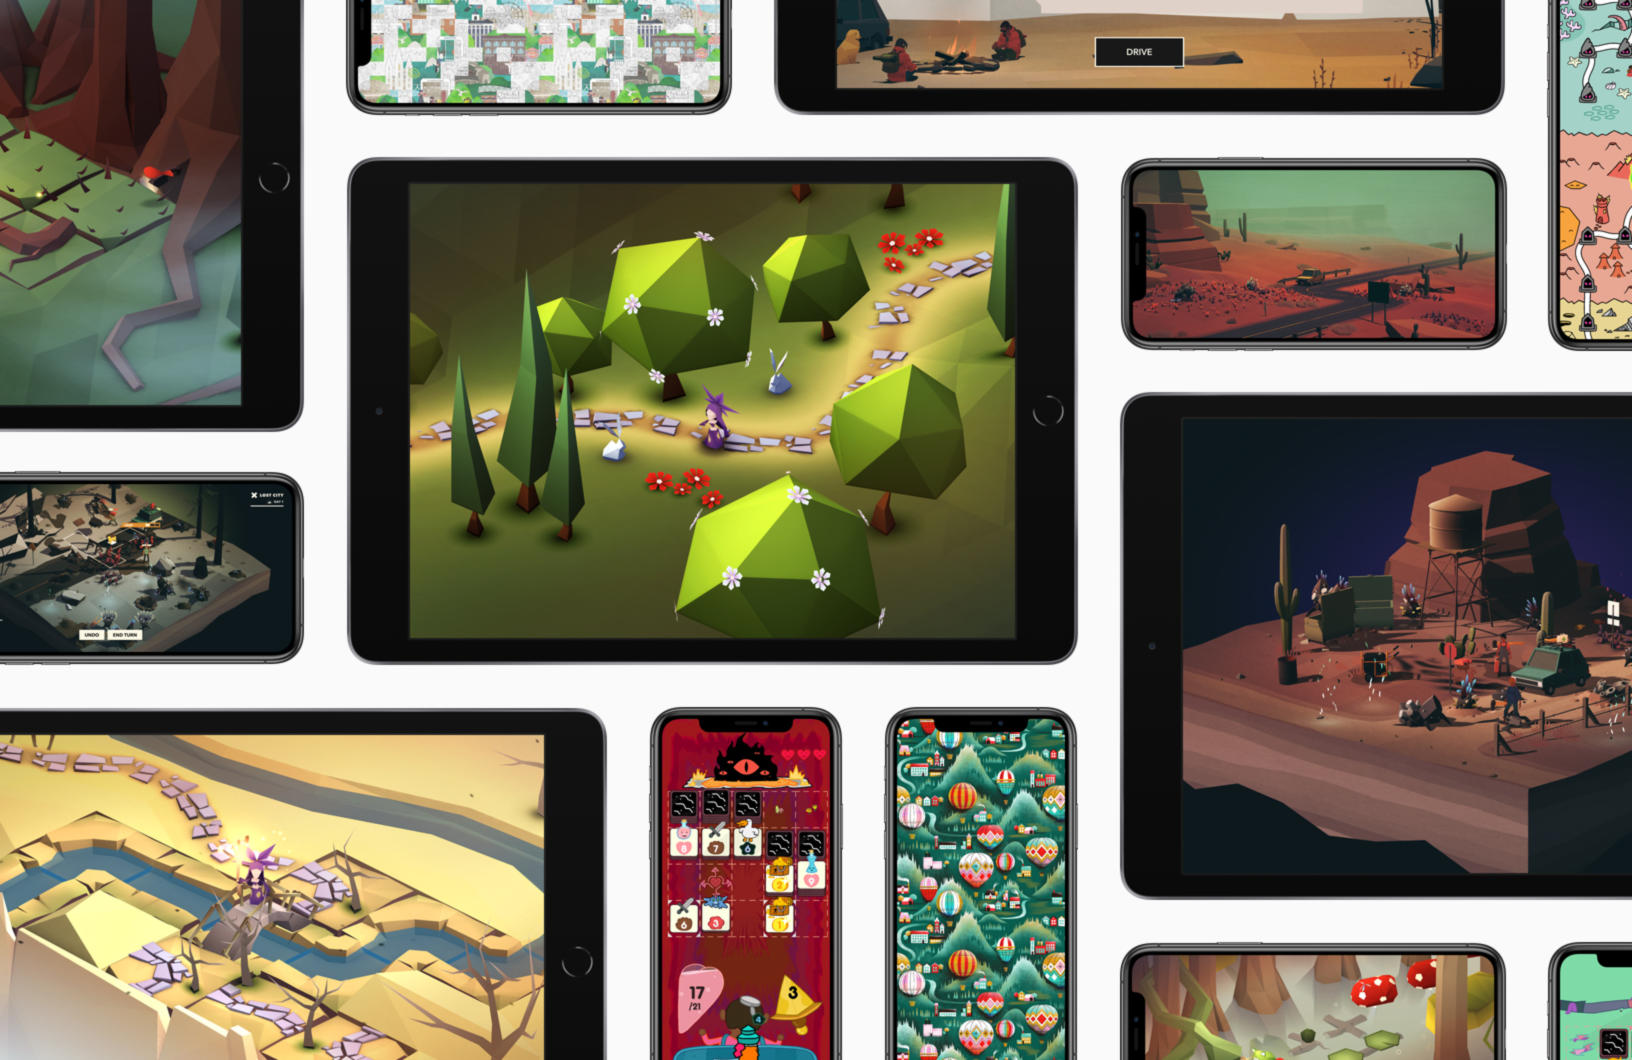 Apple apple arcade launches on app store sept 19